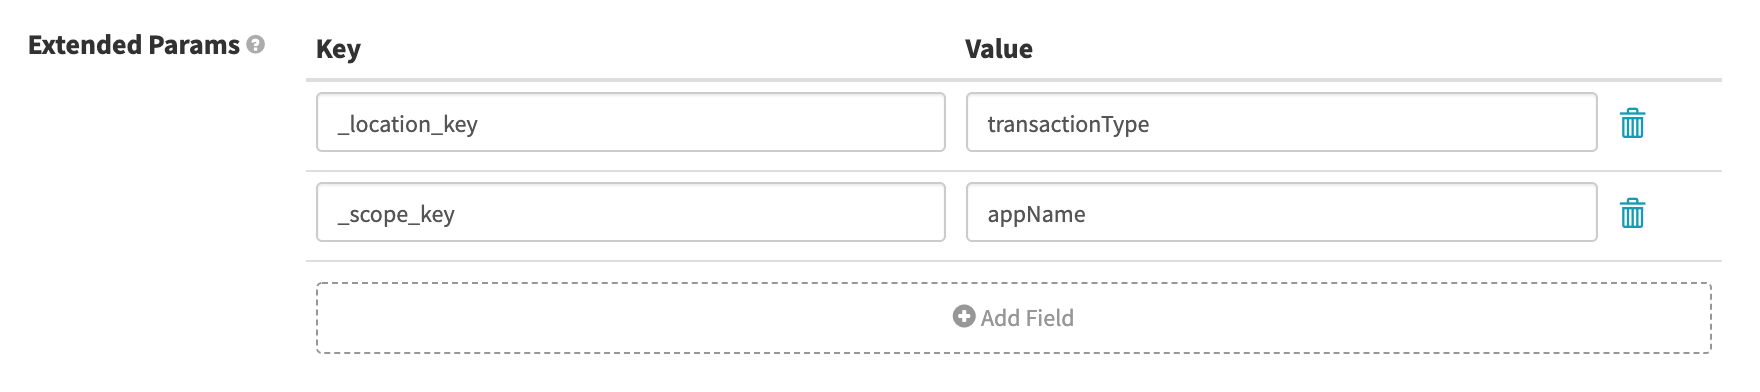 Extended Params for New Relic